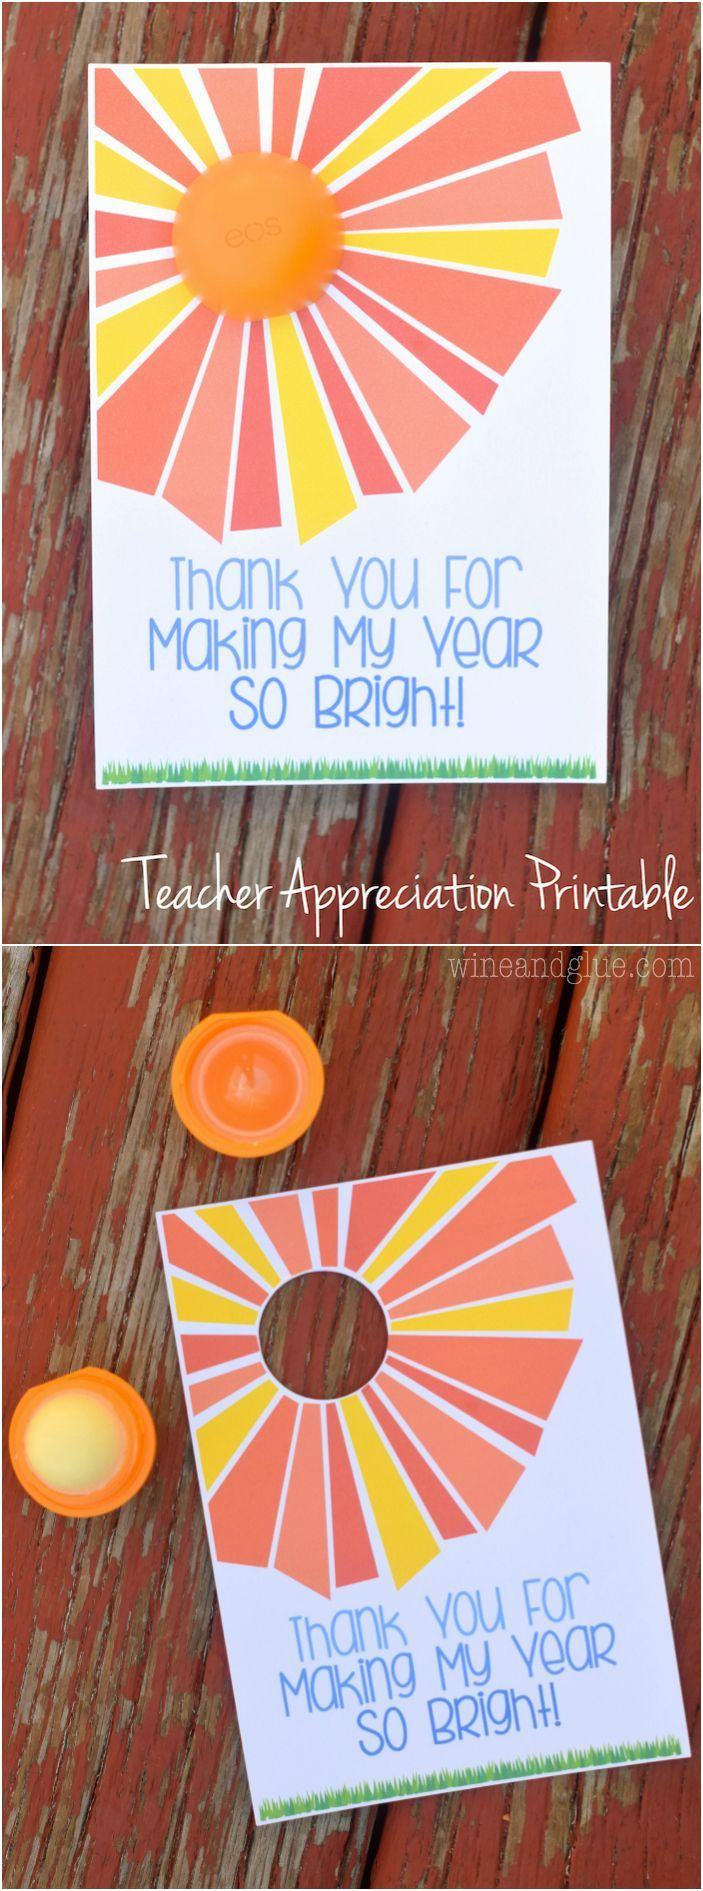 This EOS Lip Balm Teacher Appreciation Printable makes for an easy and cute teacher appreciation note!